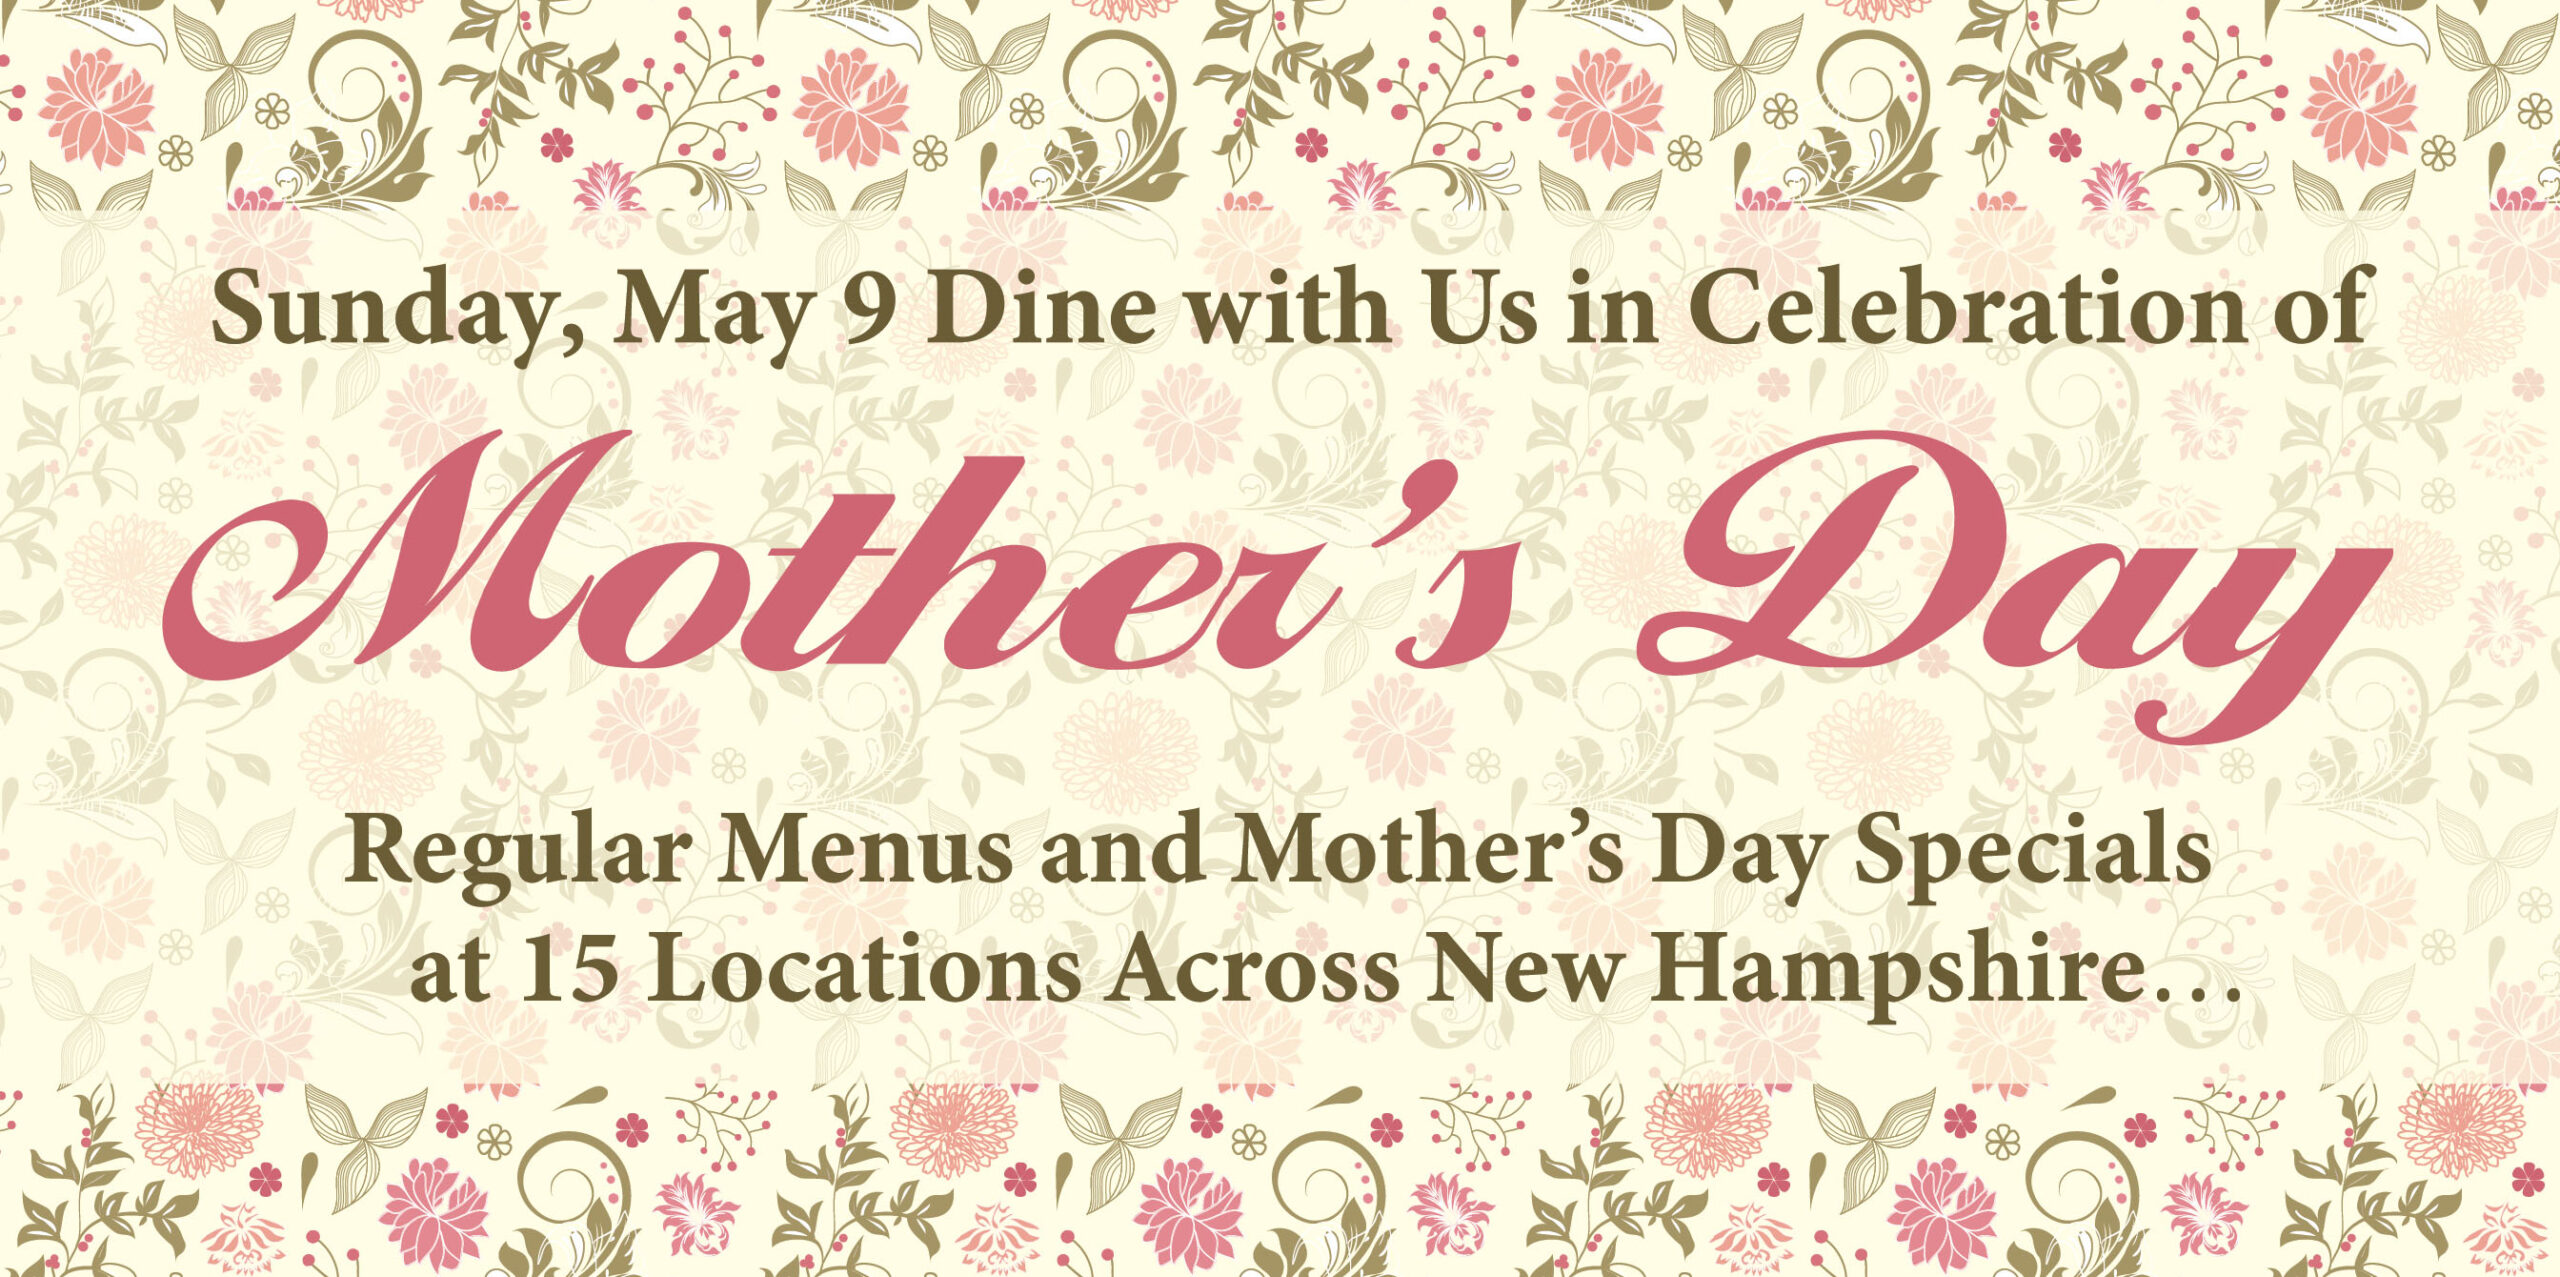 Dine With Us for Mother's Day